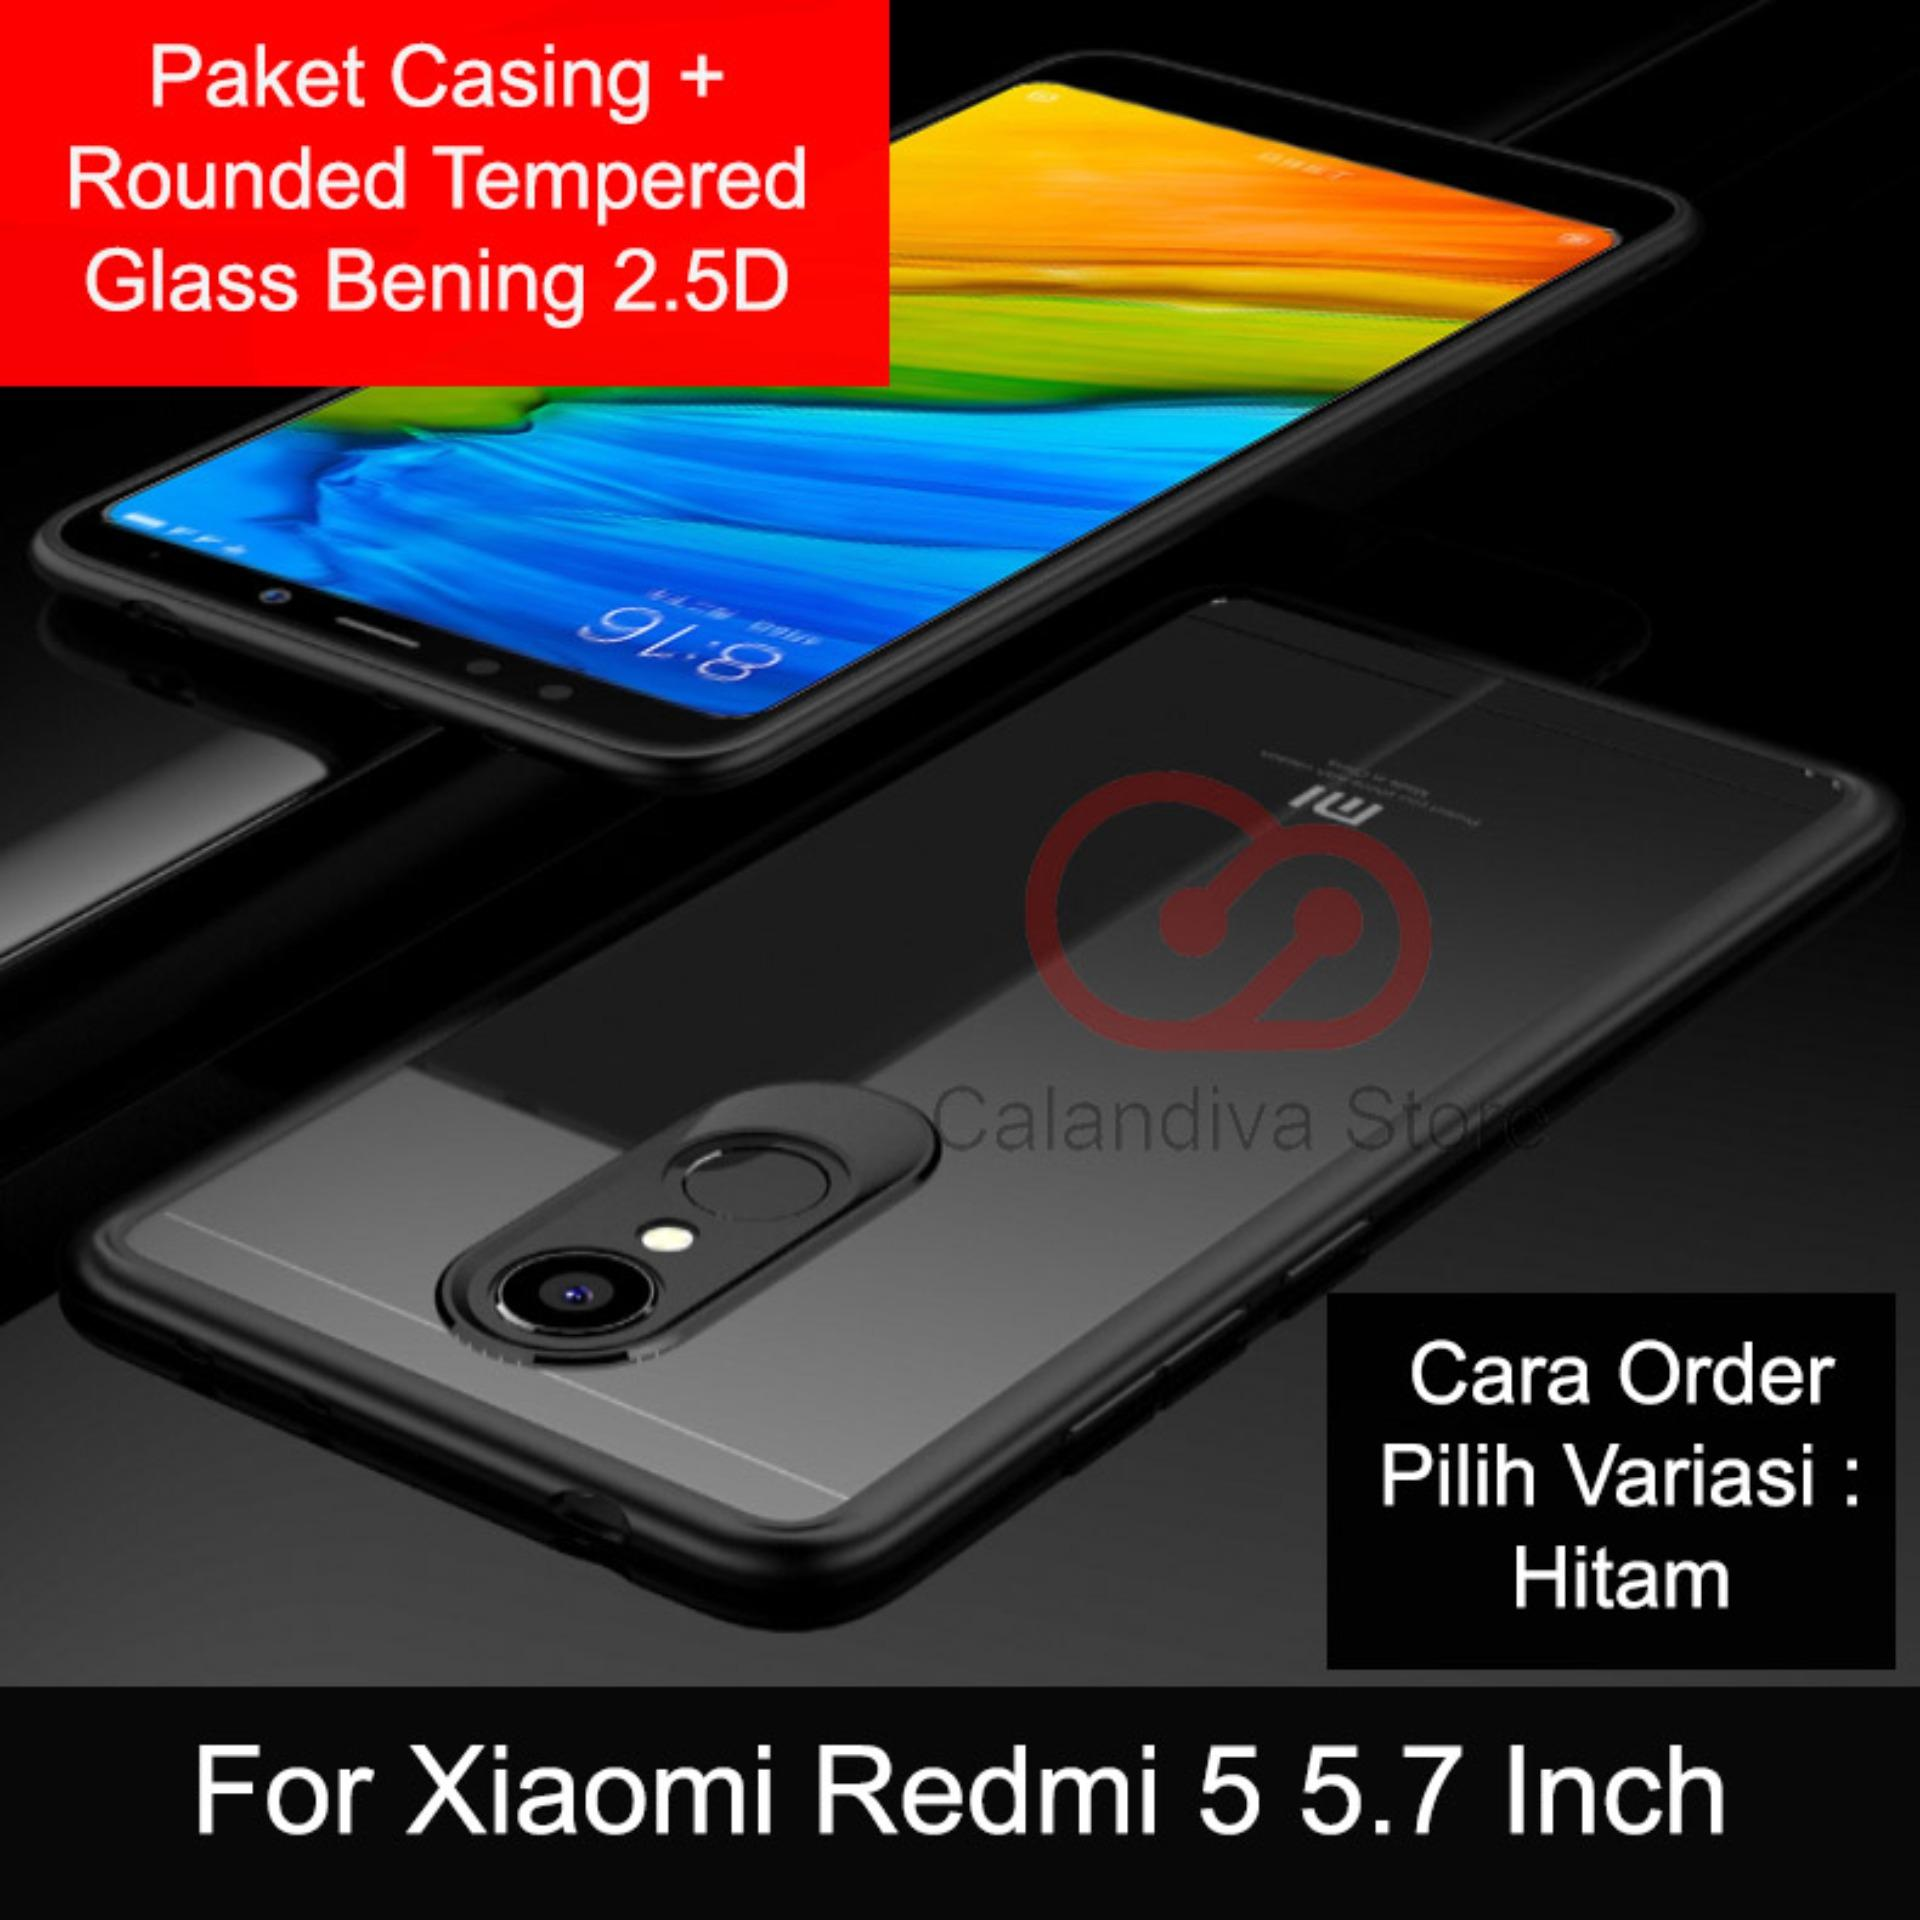 Harga Calandiva Transparent Shockproof Hybrid Premium Quality Grade A Case For Xiaomi Redmi 5 5 7 Inch Rounded Tempered Glass Bening 2 5D Online